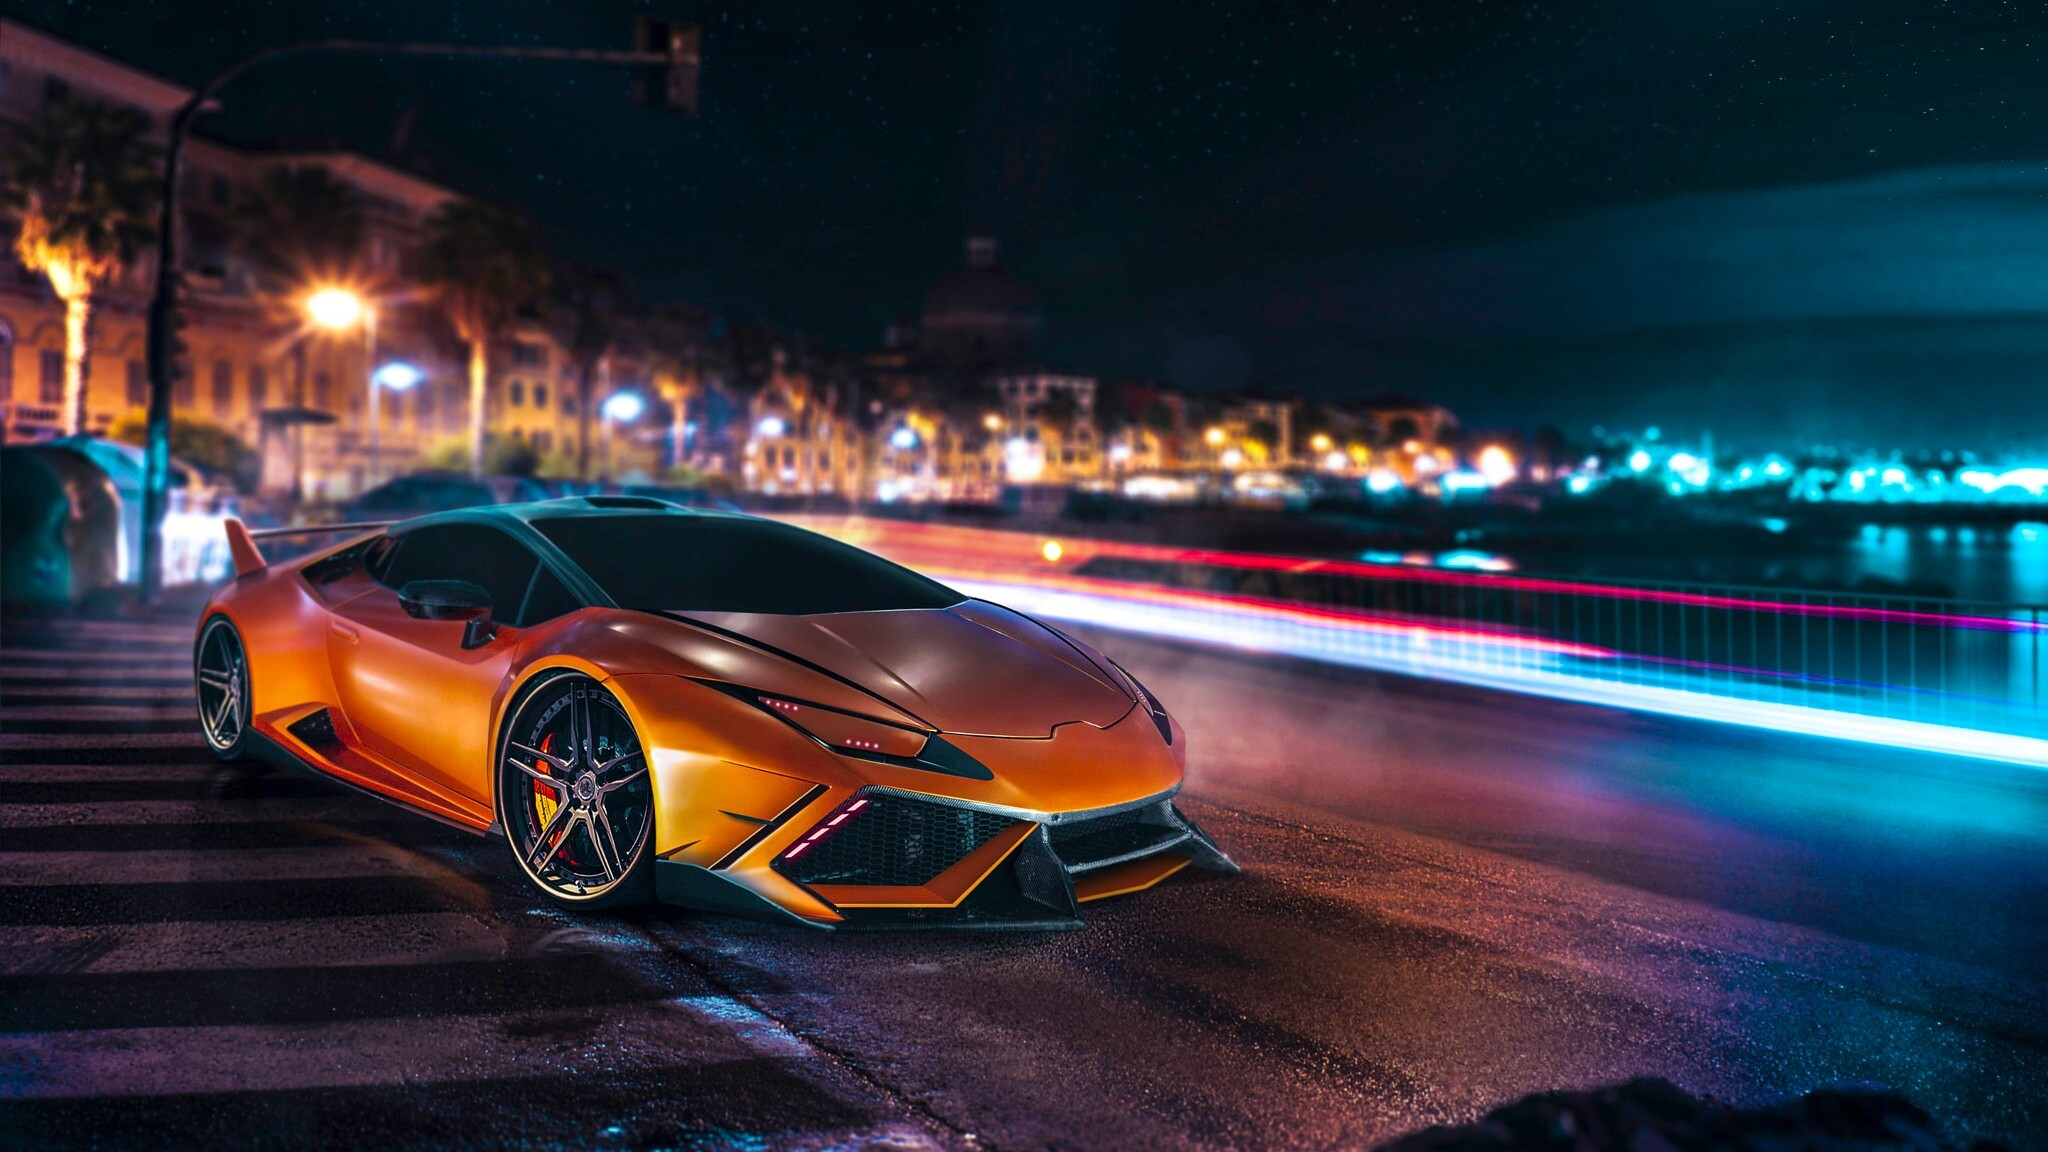 2048x1152 Lamborghini Huracan Full HD 2048x1152 Resolution